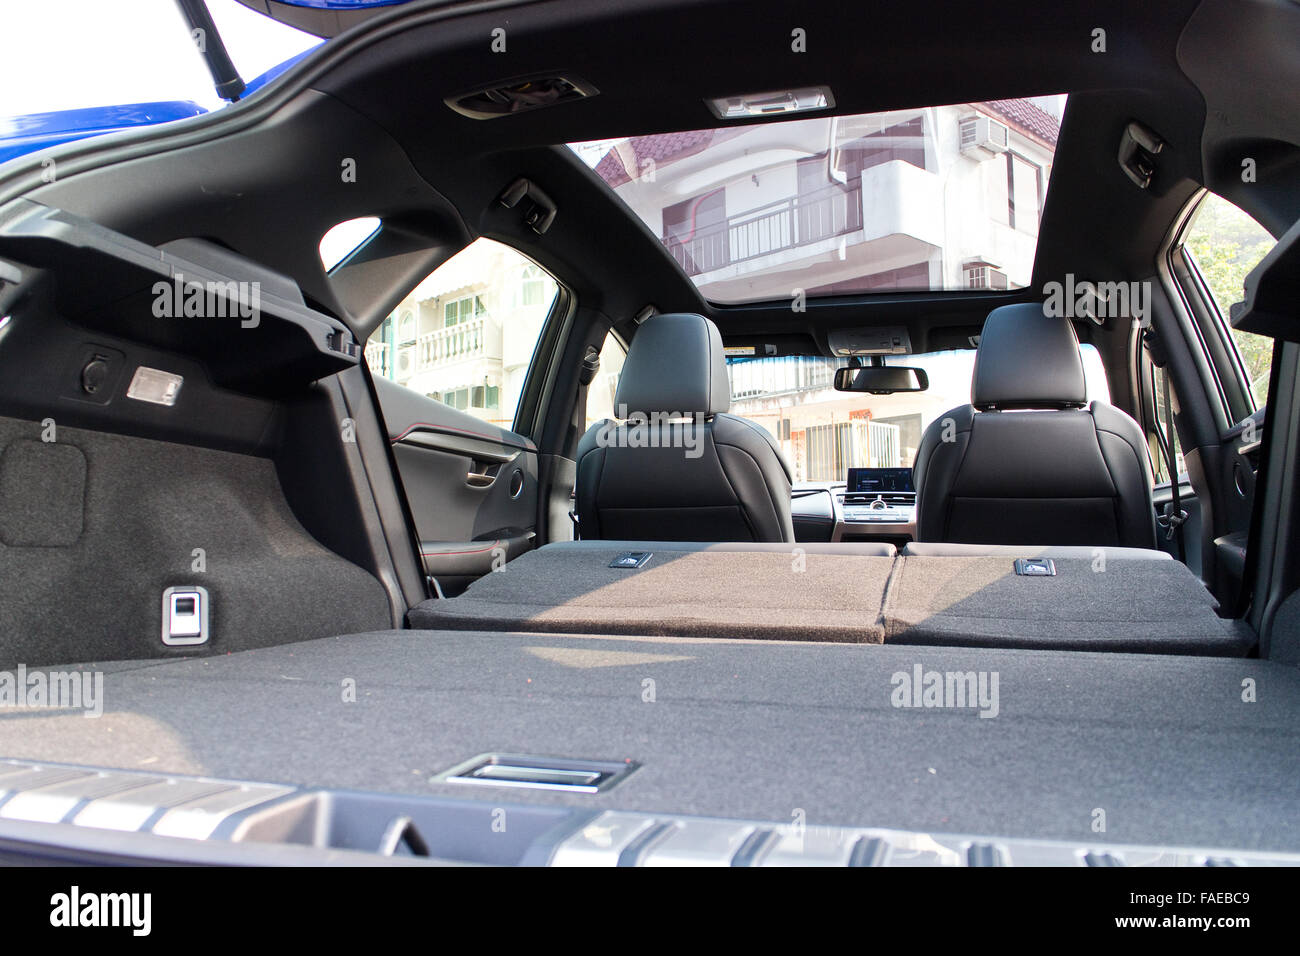 Hong Kong, China Jan 21, 2015 : Lexus NX 200t 2015 Trunk on Jan 21 2015 in Hong Kong. - Stock Image